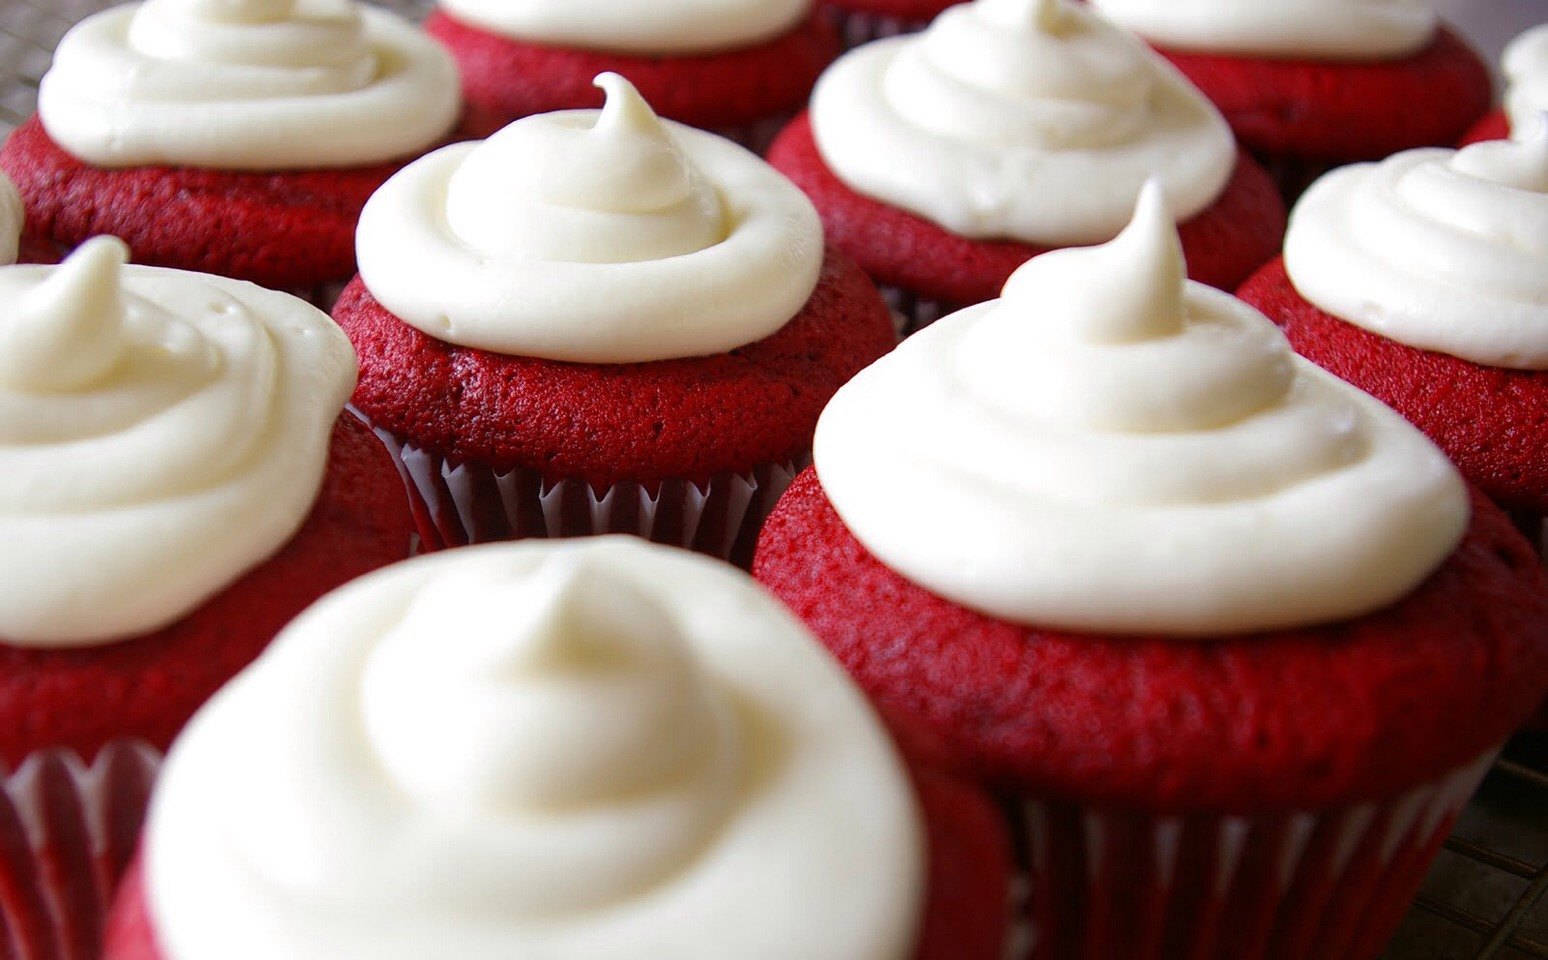 Ingredients Red Velvet (Cake Mix Recipe): 1 box Red Velvet Cake mix 3 eggs 1/3 C. melted butter, cooled 1 1/4 C. buttermilk or milk 2 tsp. vanilla extract Cream Cheese Frosting: 1/2 C. butter, softened 8 oz. cream cheese, softened 2 tsp. vanilla extract 3- 4 1/2 C. powdered sugar